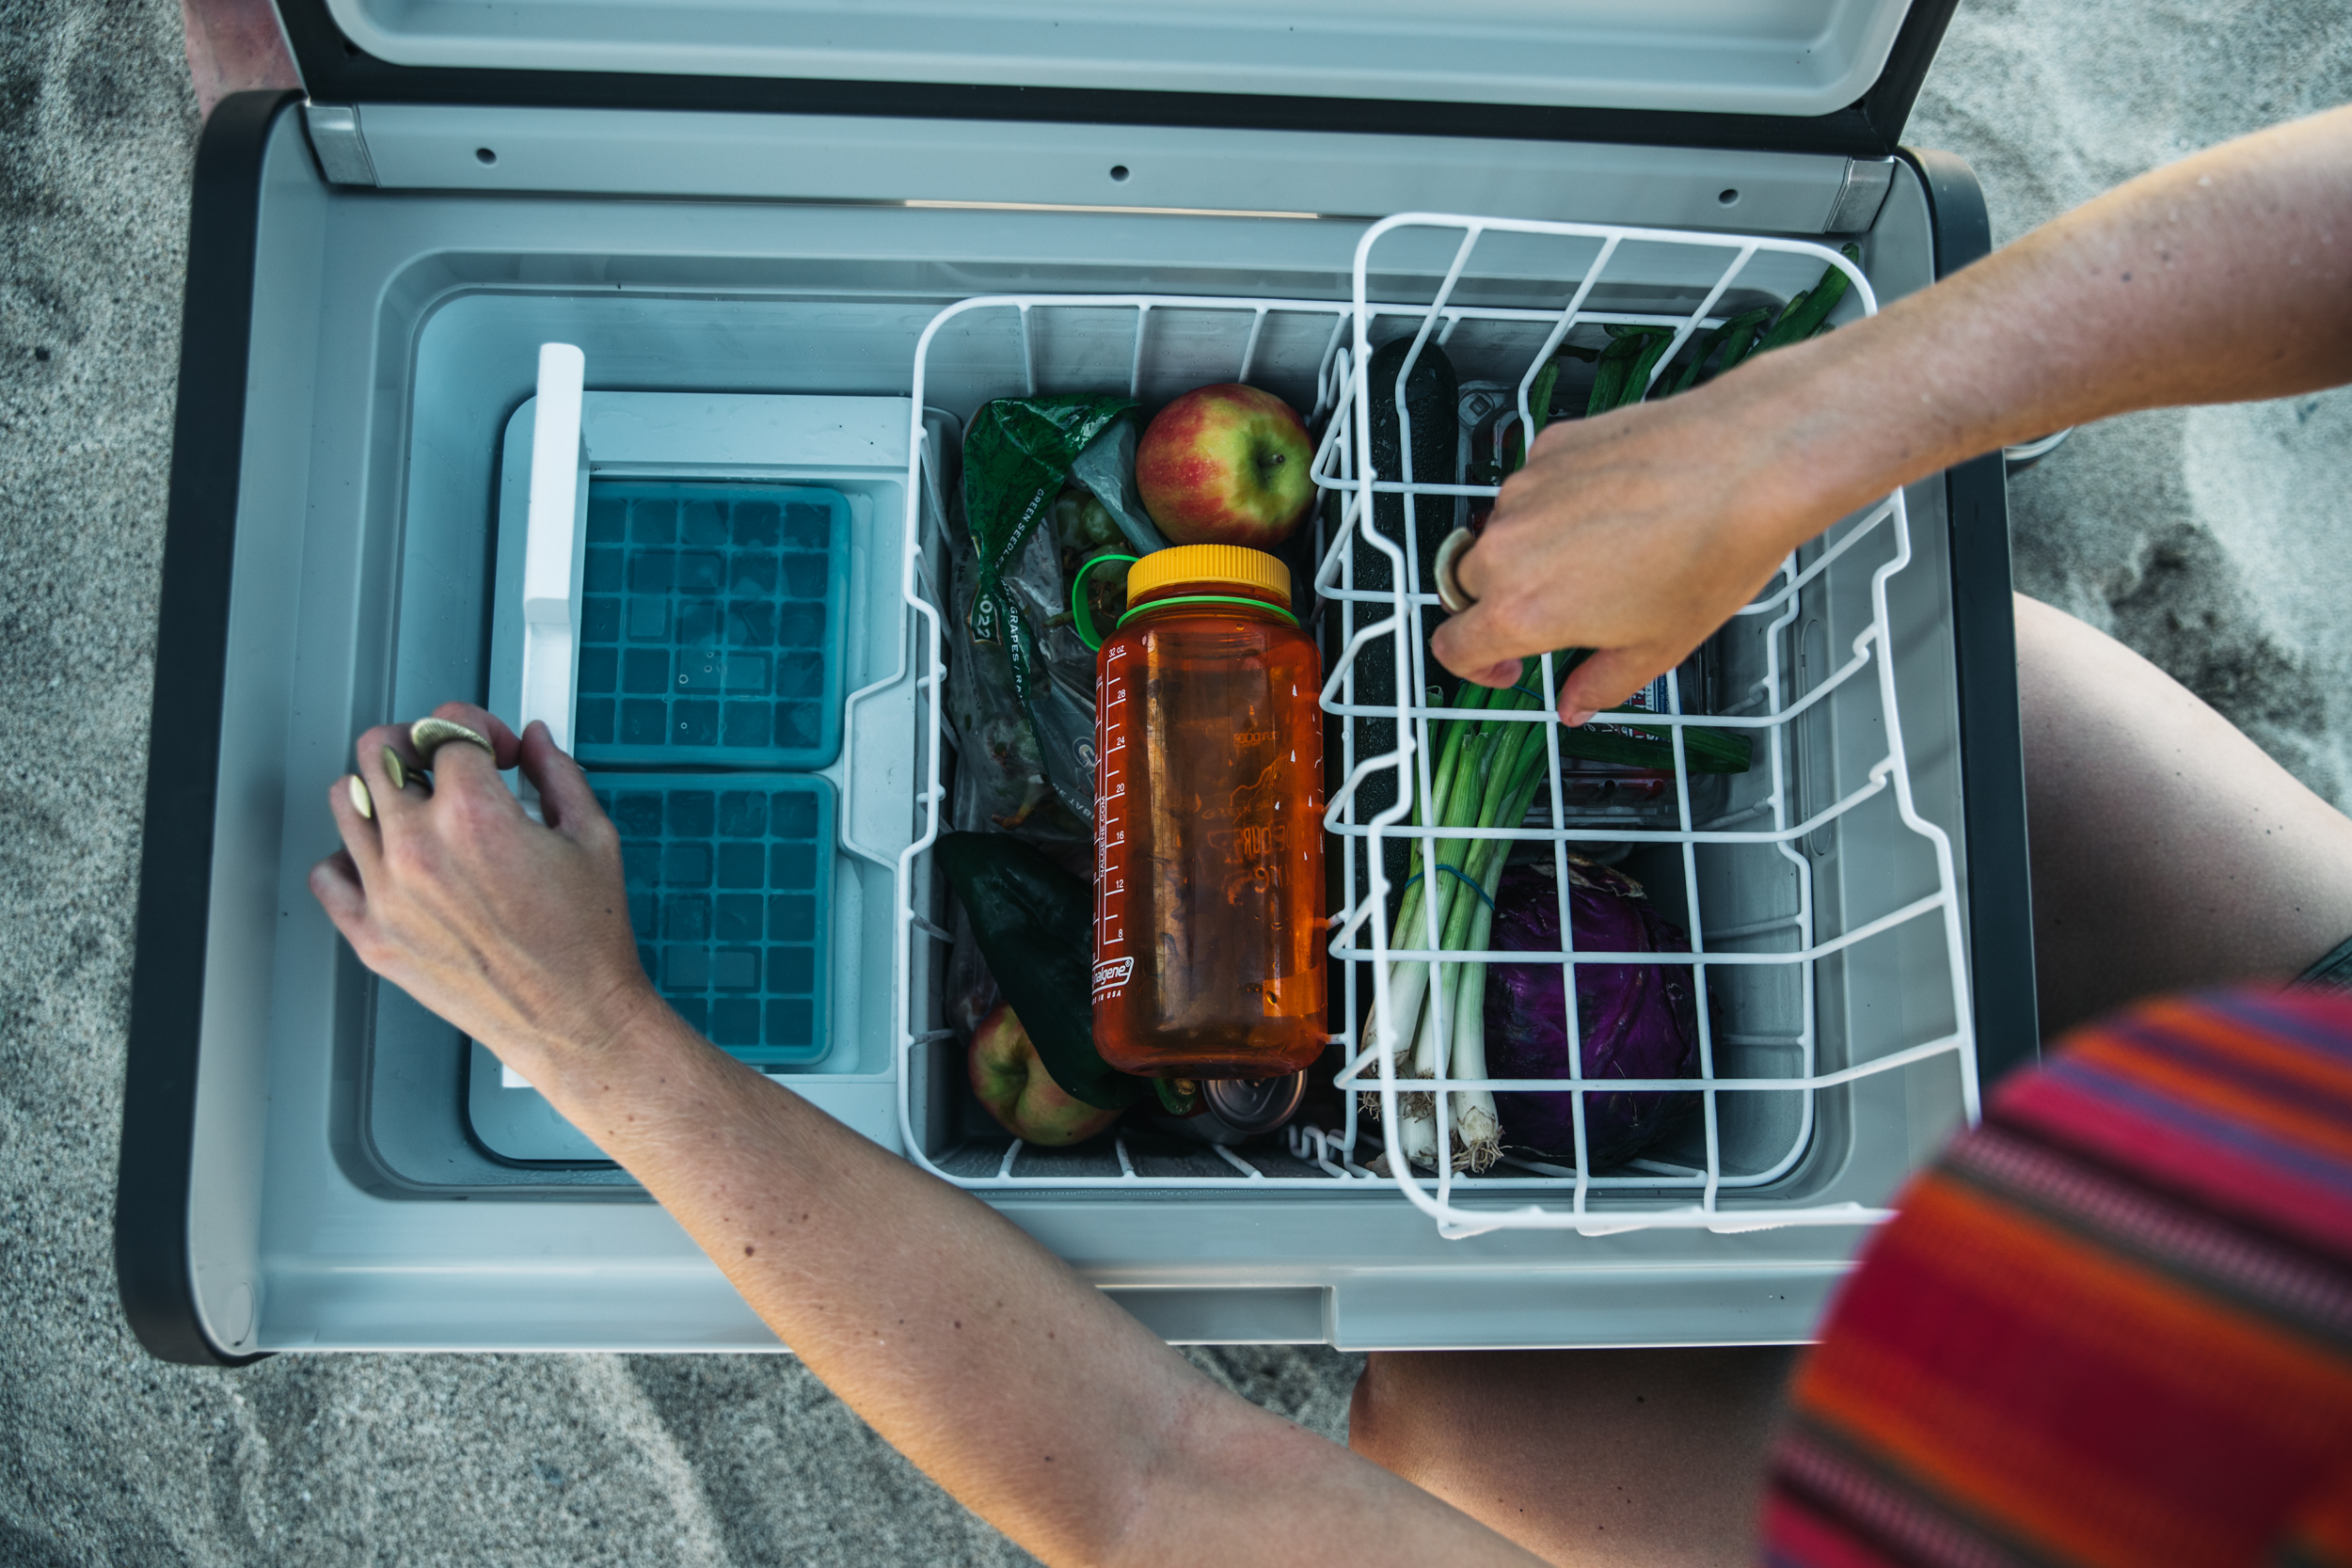 Best Portable Refrigerator Yet? We Tested Dometic's New CFX3 | GearJunkie